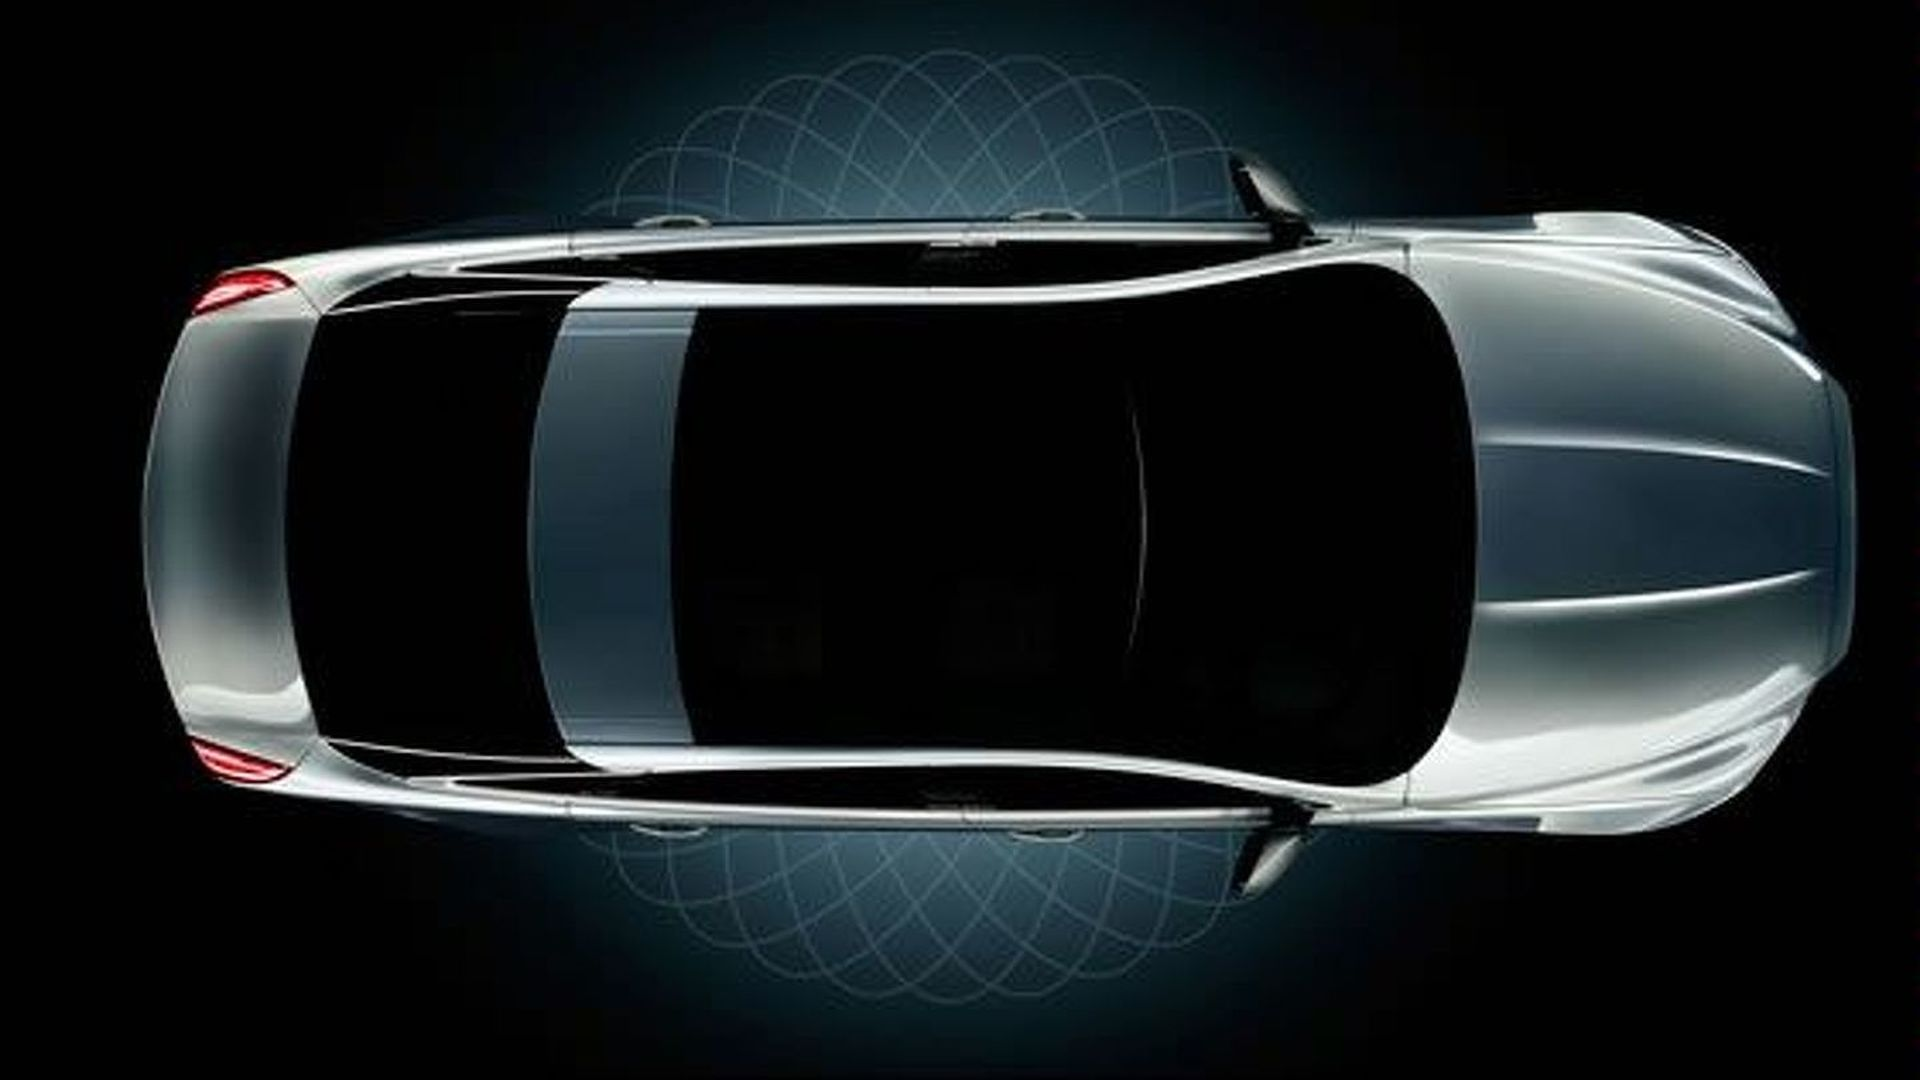 2010 Jaguar XJ driving dynamics teaser video with Chief Engineer Mike Cross